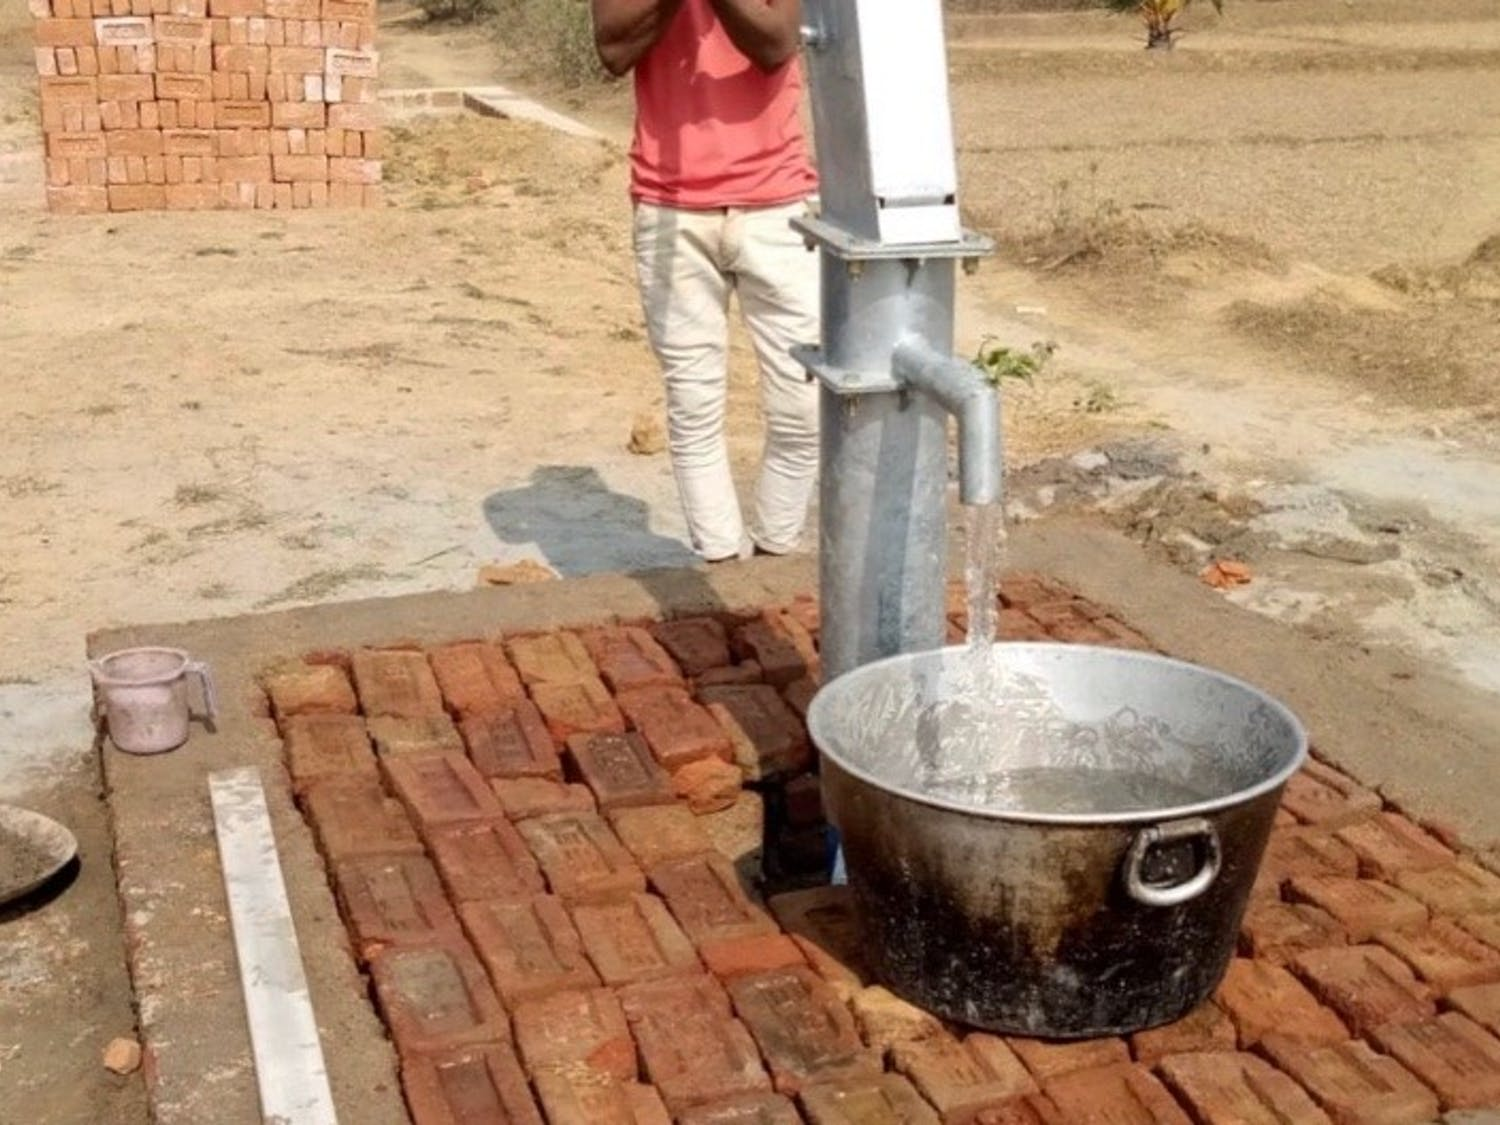 The hand pump installed through the efforts of the Healthy Hands Initiative in Lalpur. Photo courtesy of Jonah Im.